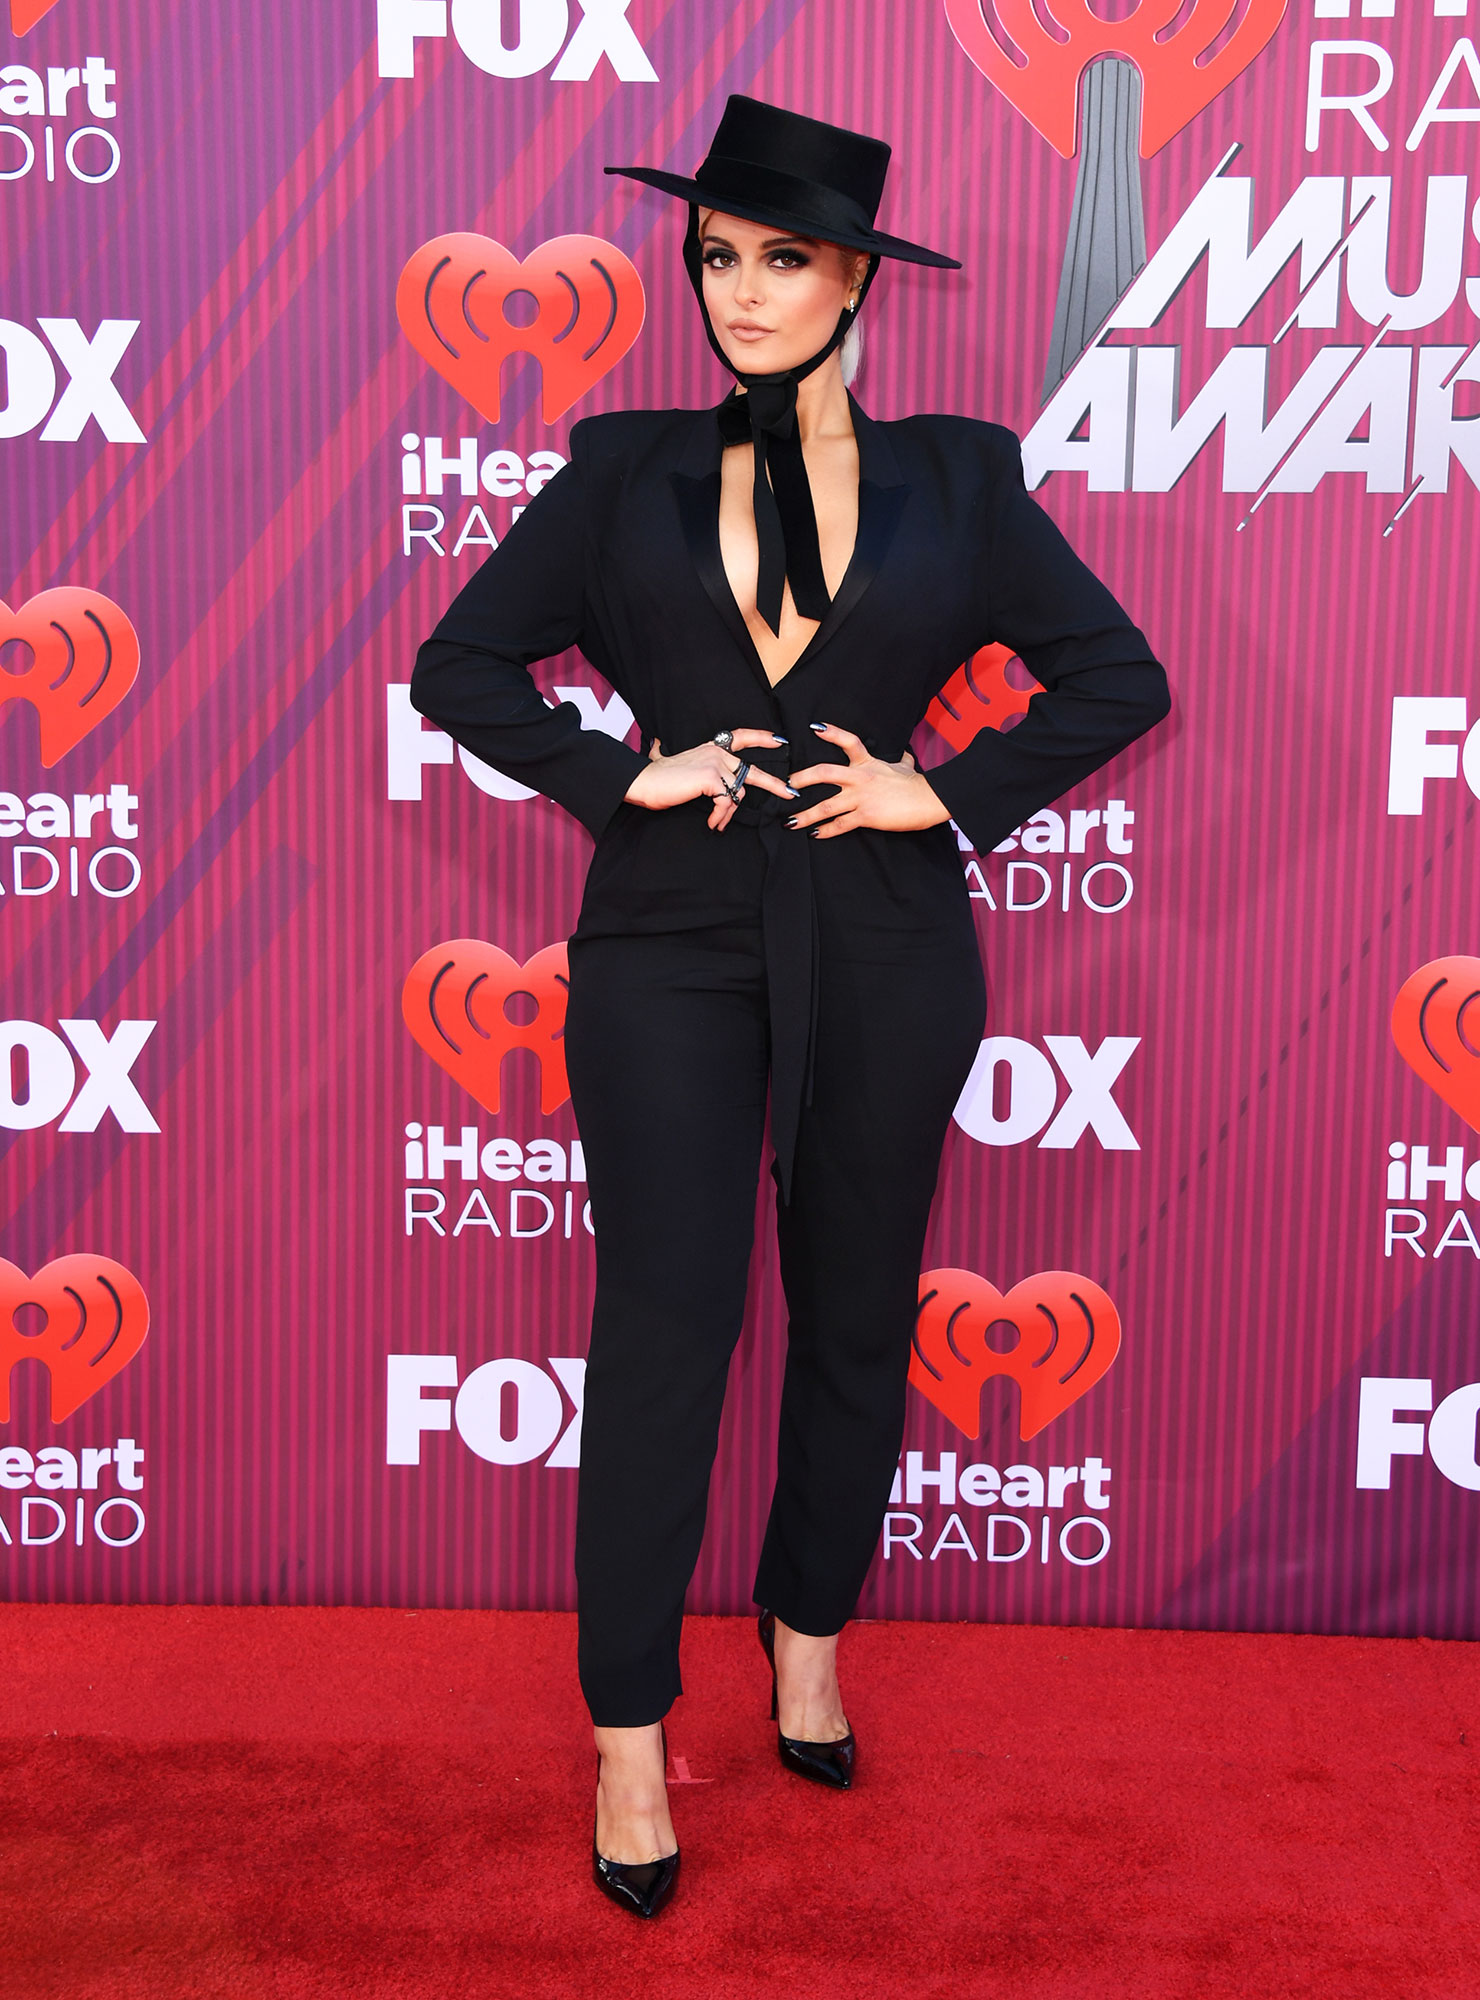 Bebe Rexha See What the Stars Wore to the iHeart Radio Music Awards 2019 - Wearing a shirtless black tux with a wide-brim hat.